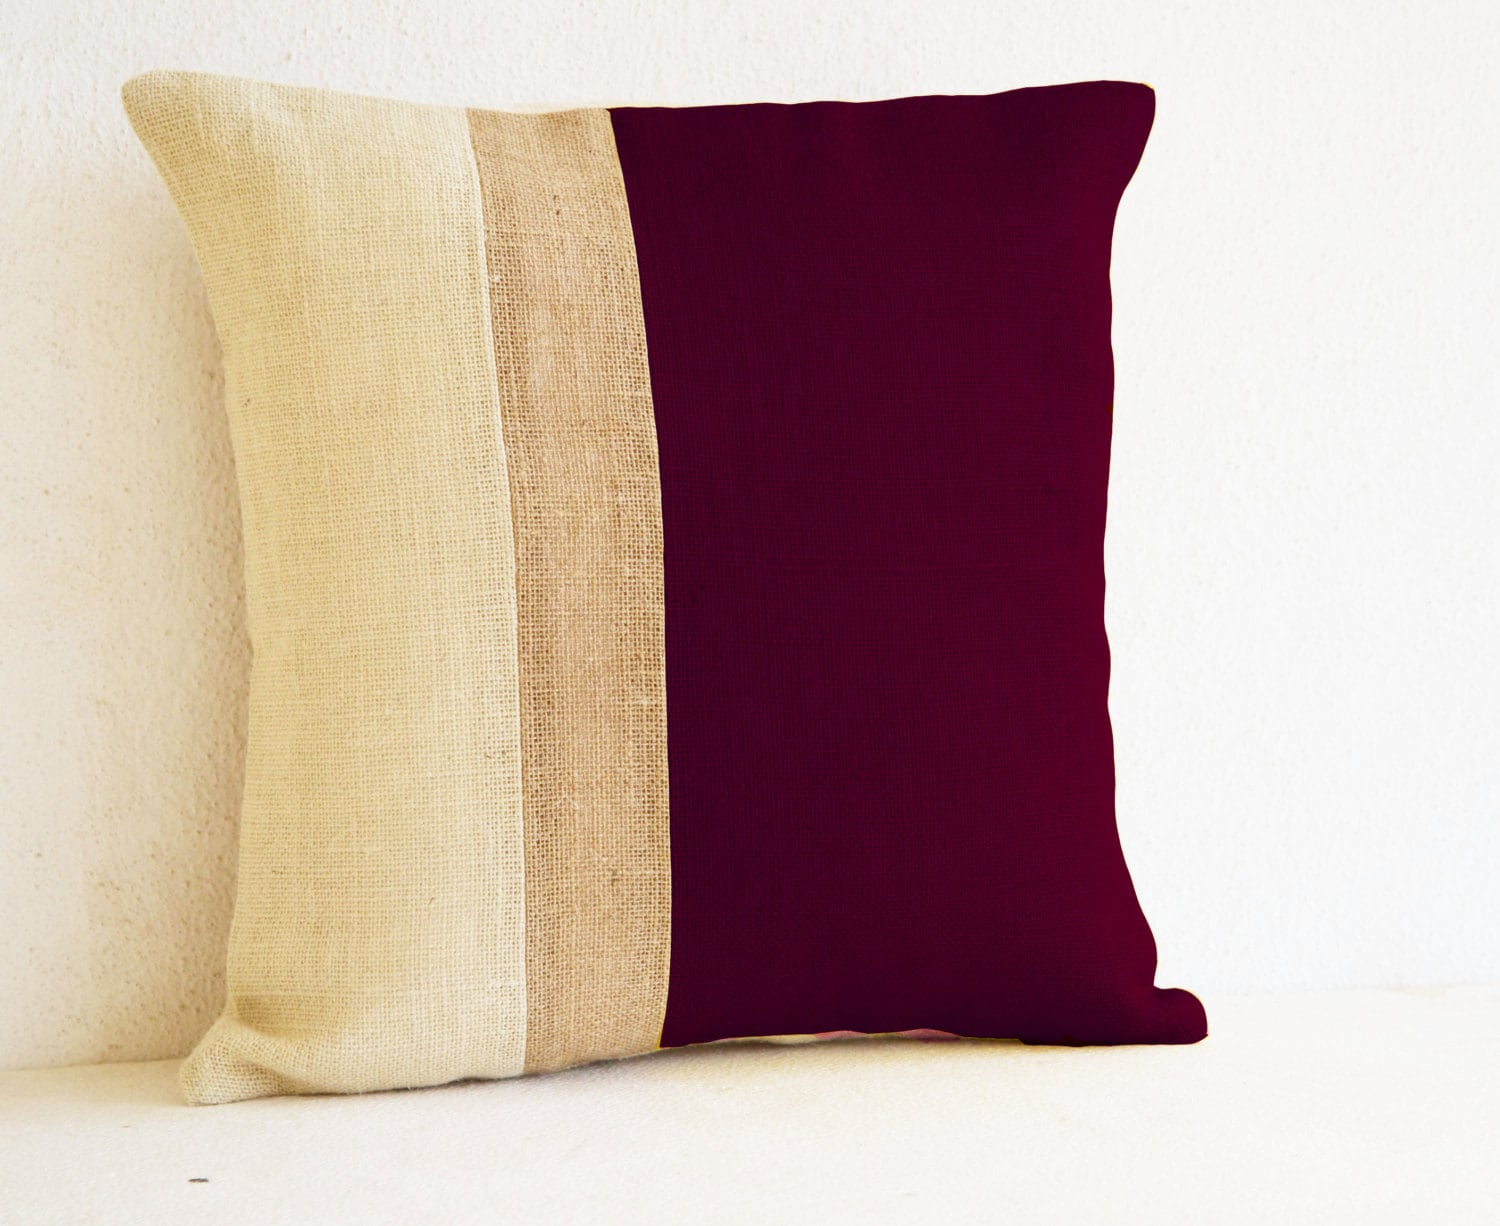 pillow wine of all velvet collections pillows designer swan decorative burgundy limited check court throw fabric georgeous